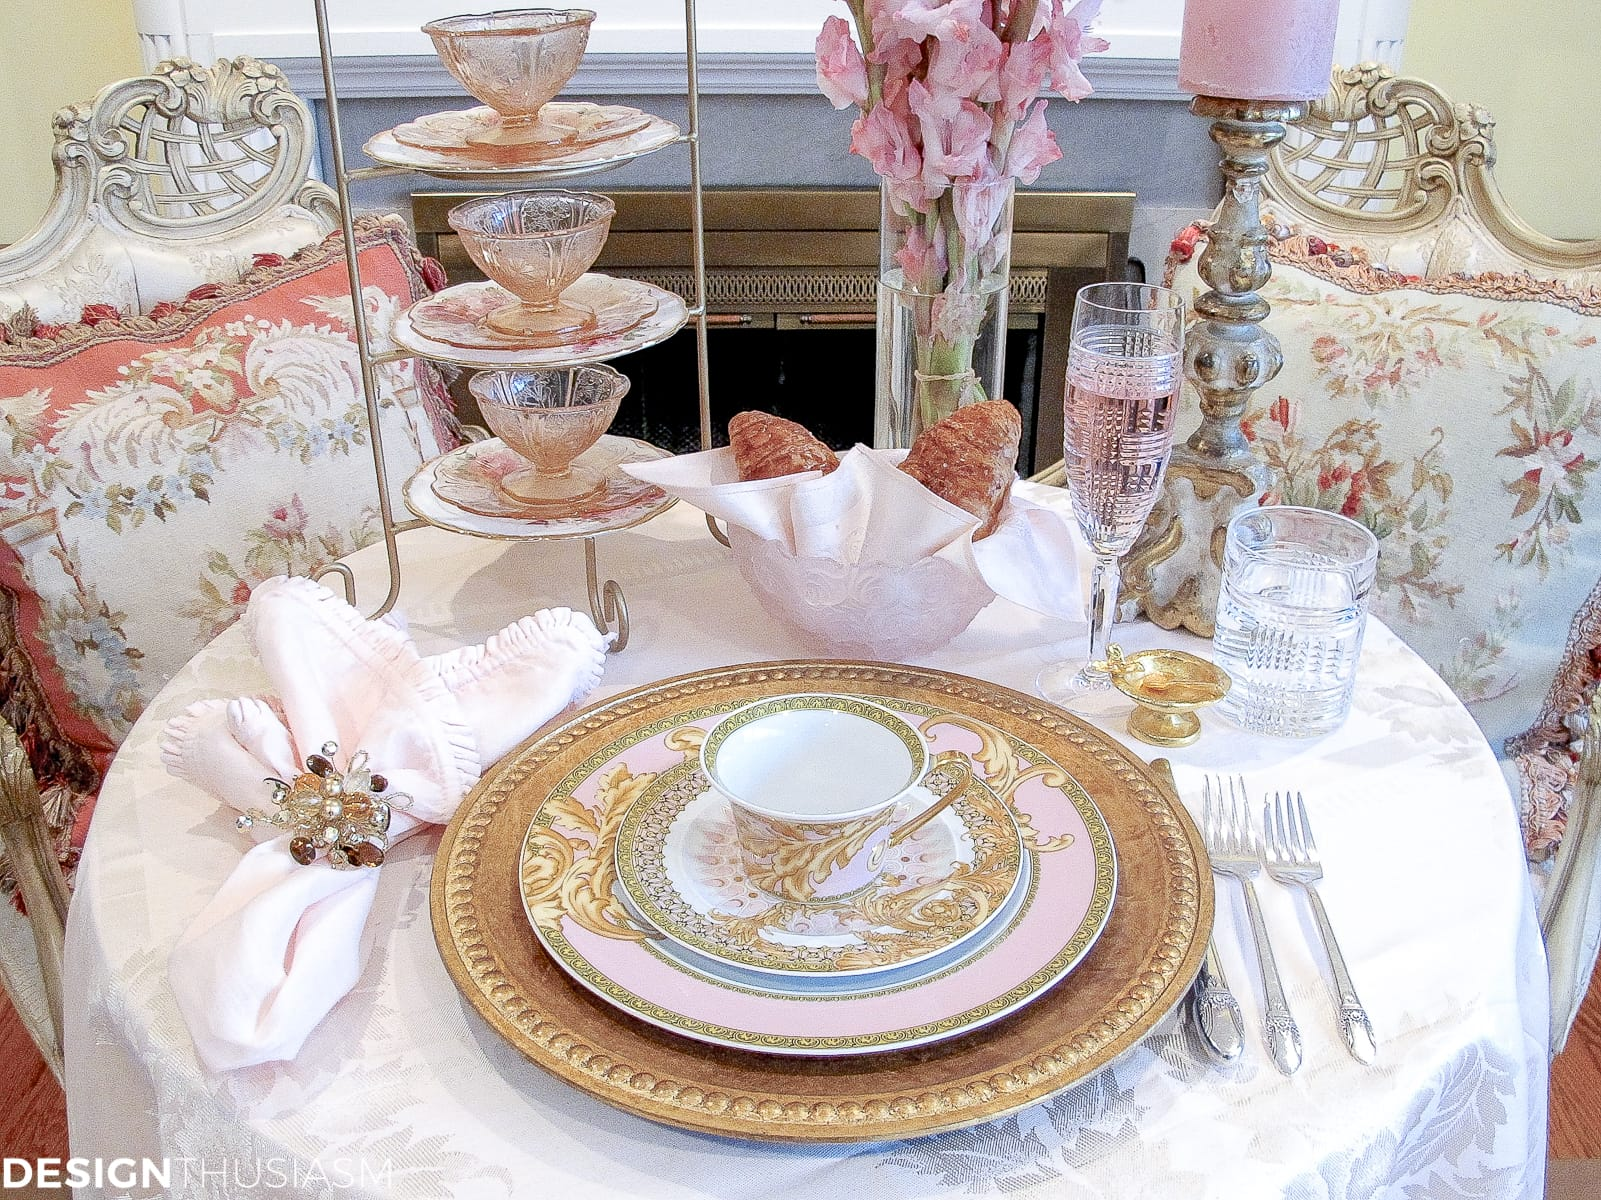 Tea party table setting with pink and gold Versace plates